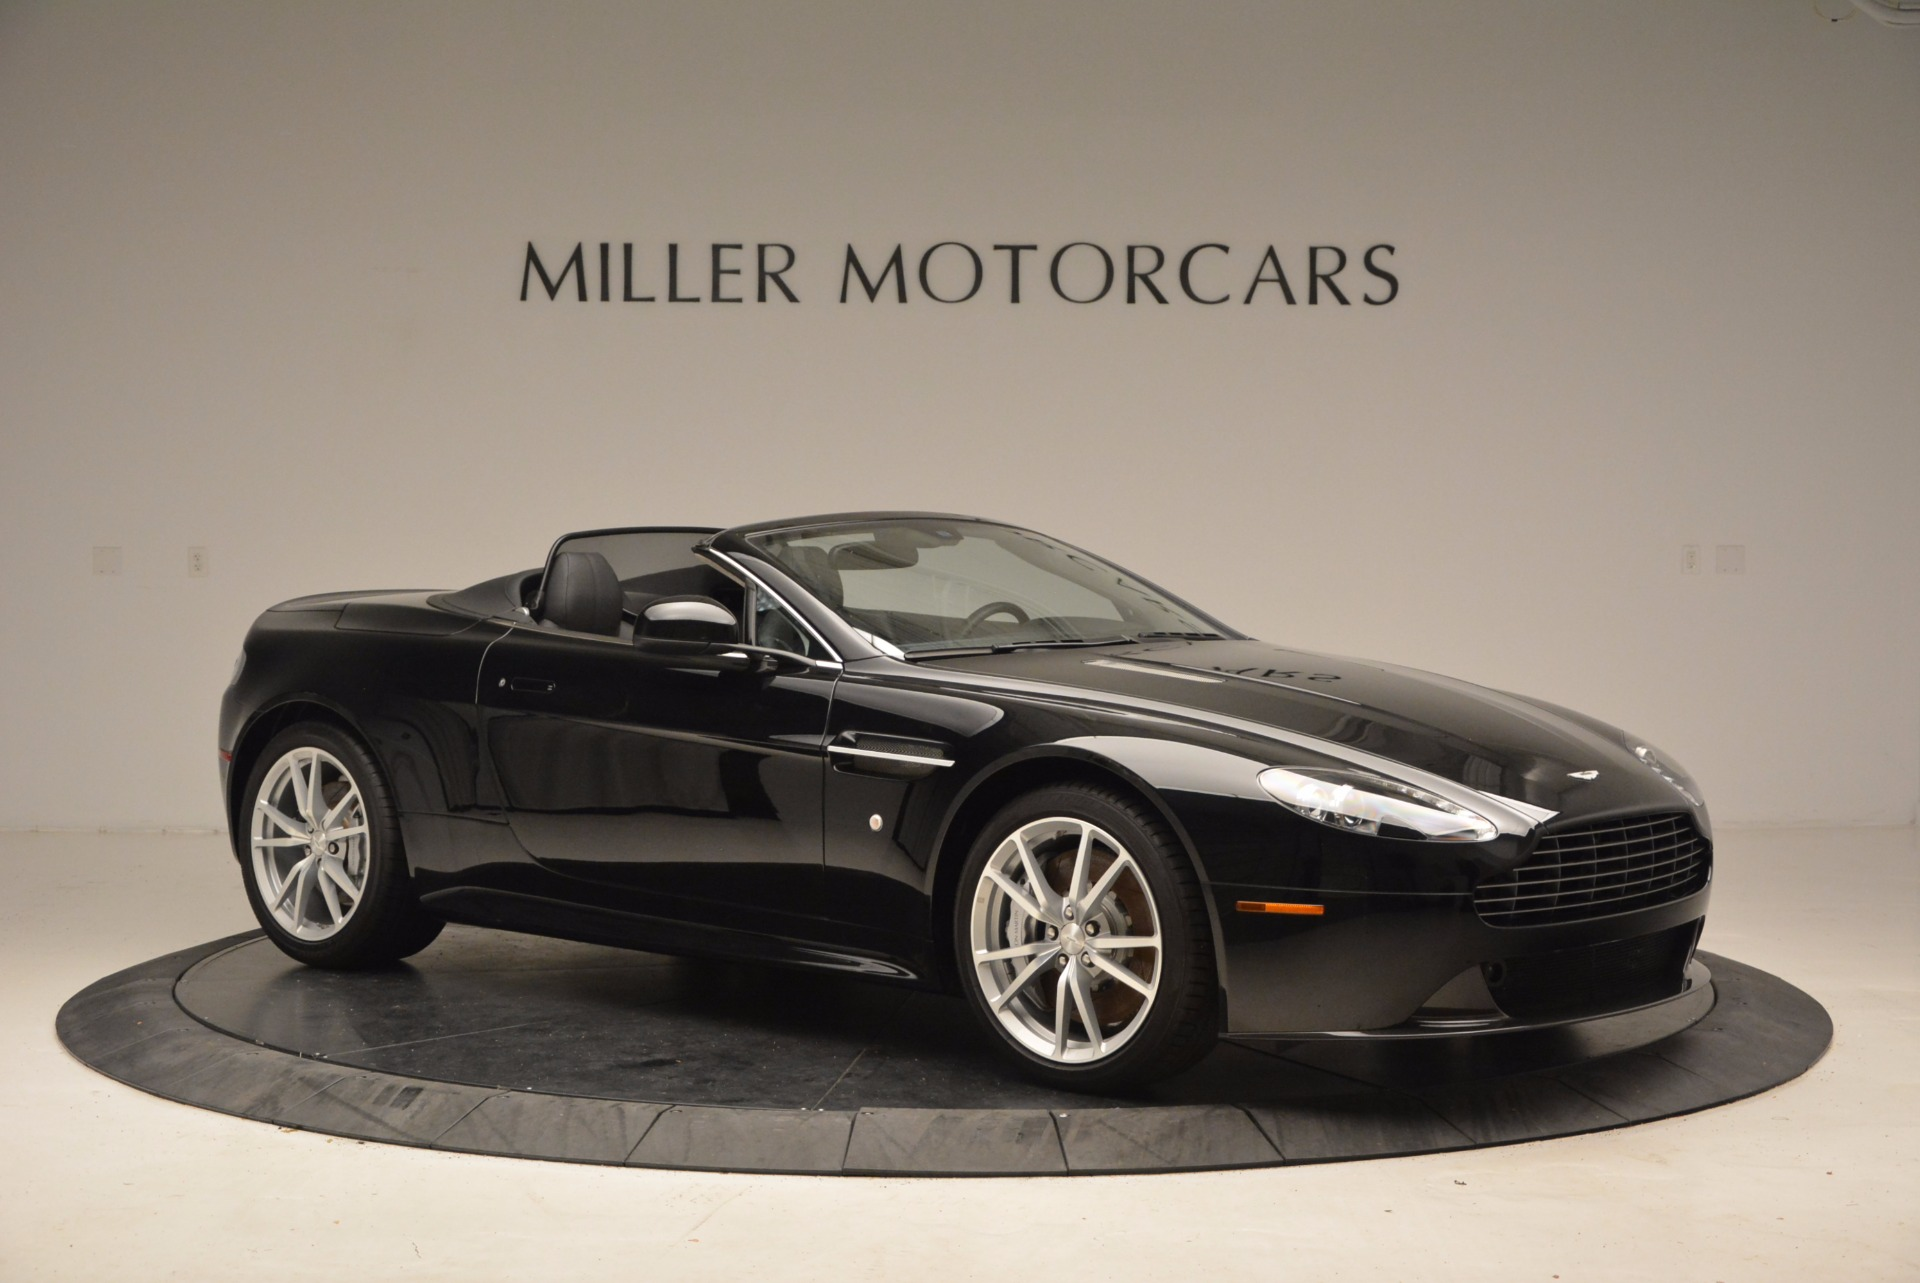 New 2016 Aston Martin V8 Vantage Roadster For Sale In Greenwich, CT 1546_p10